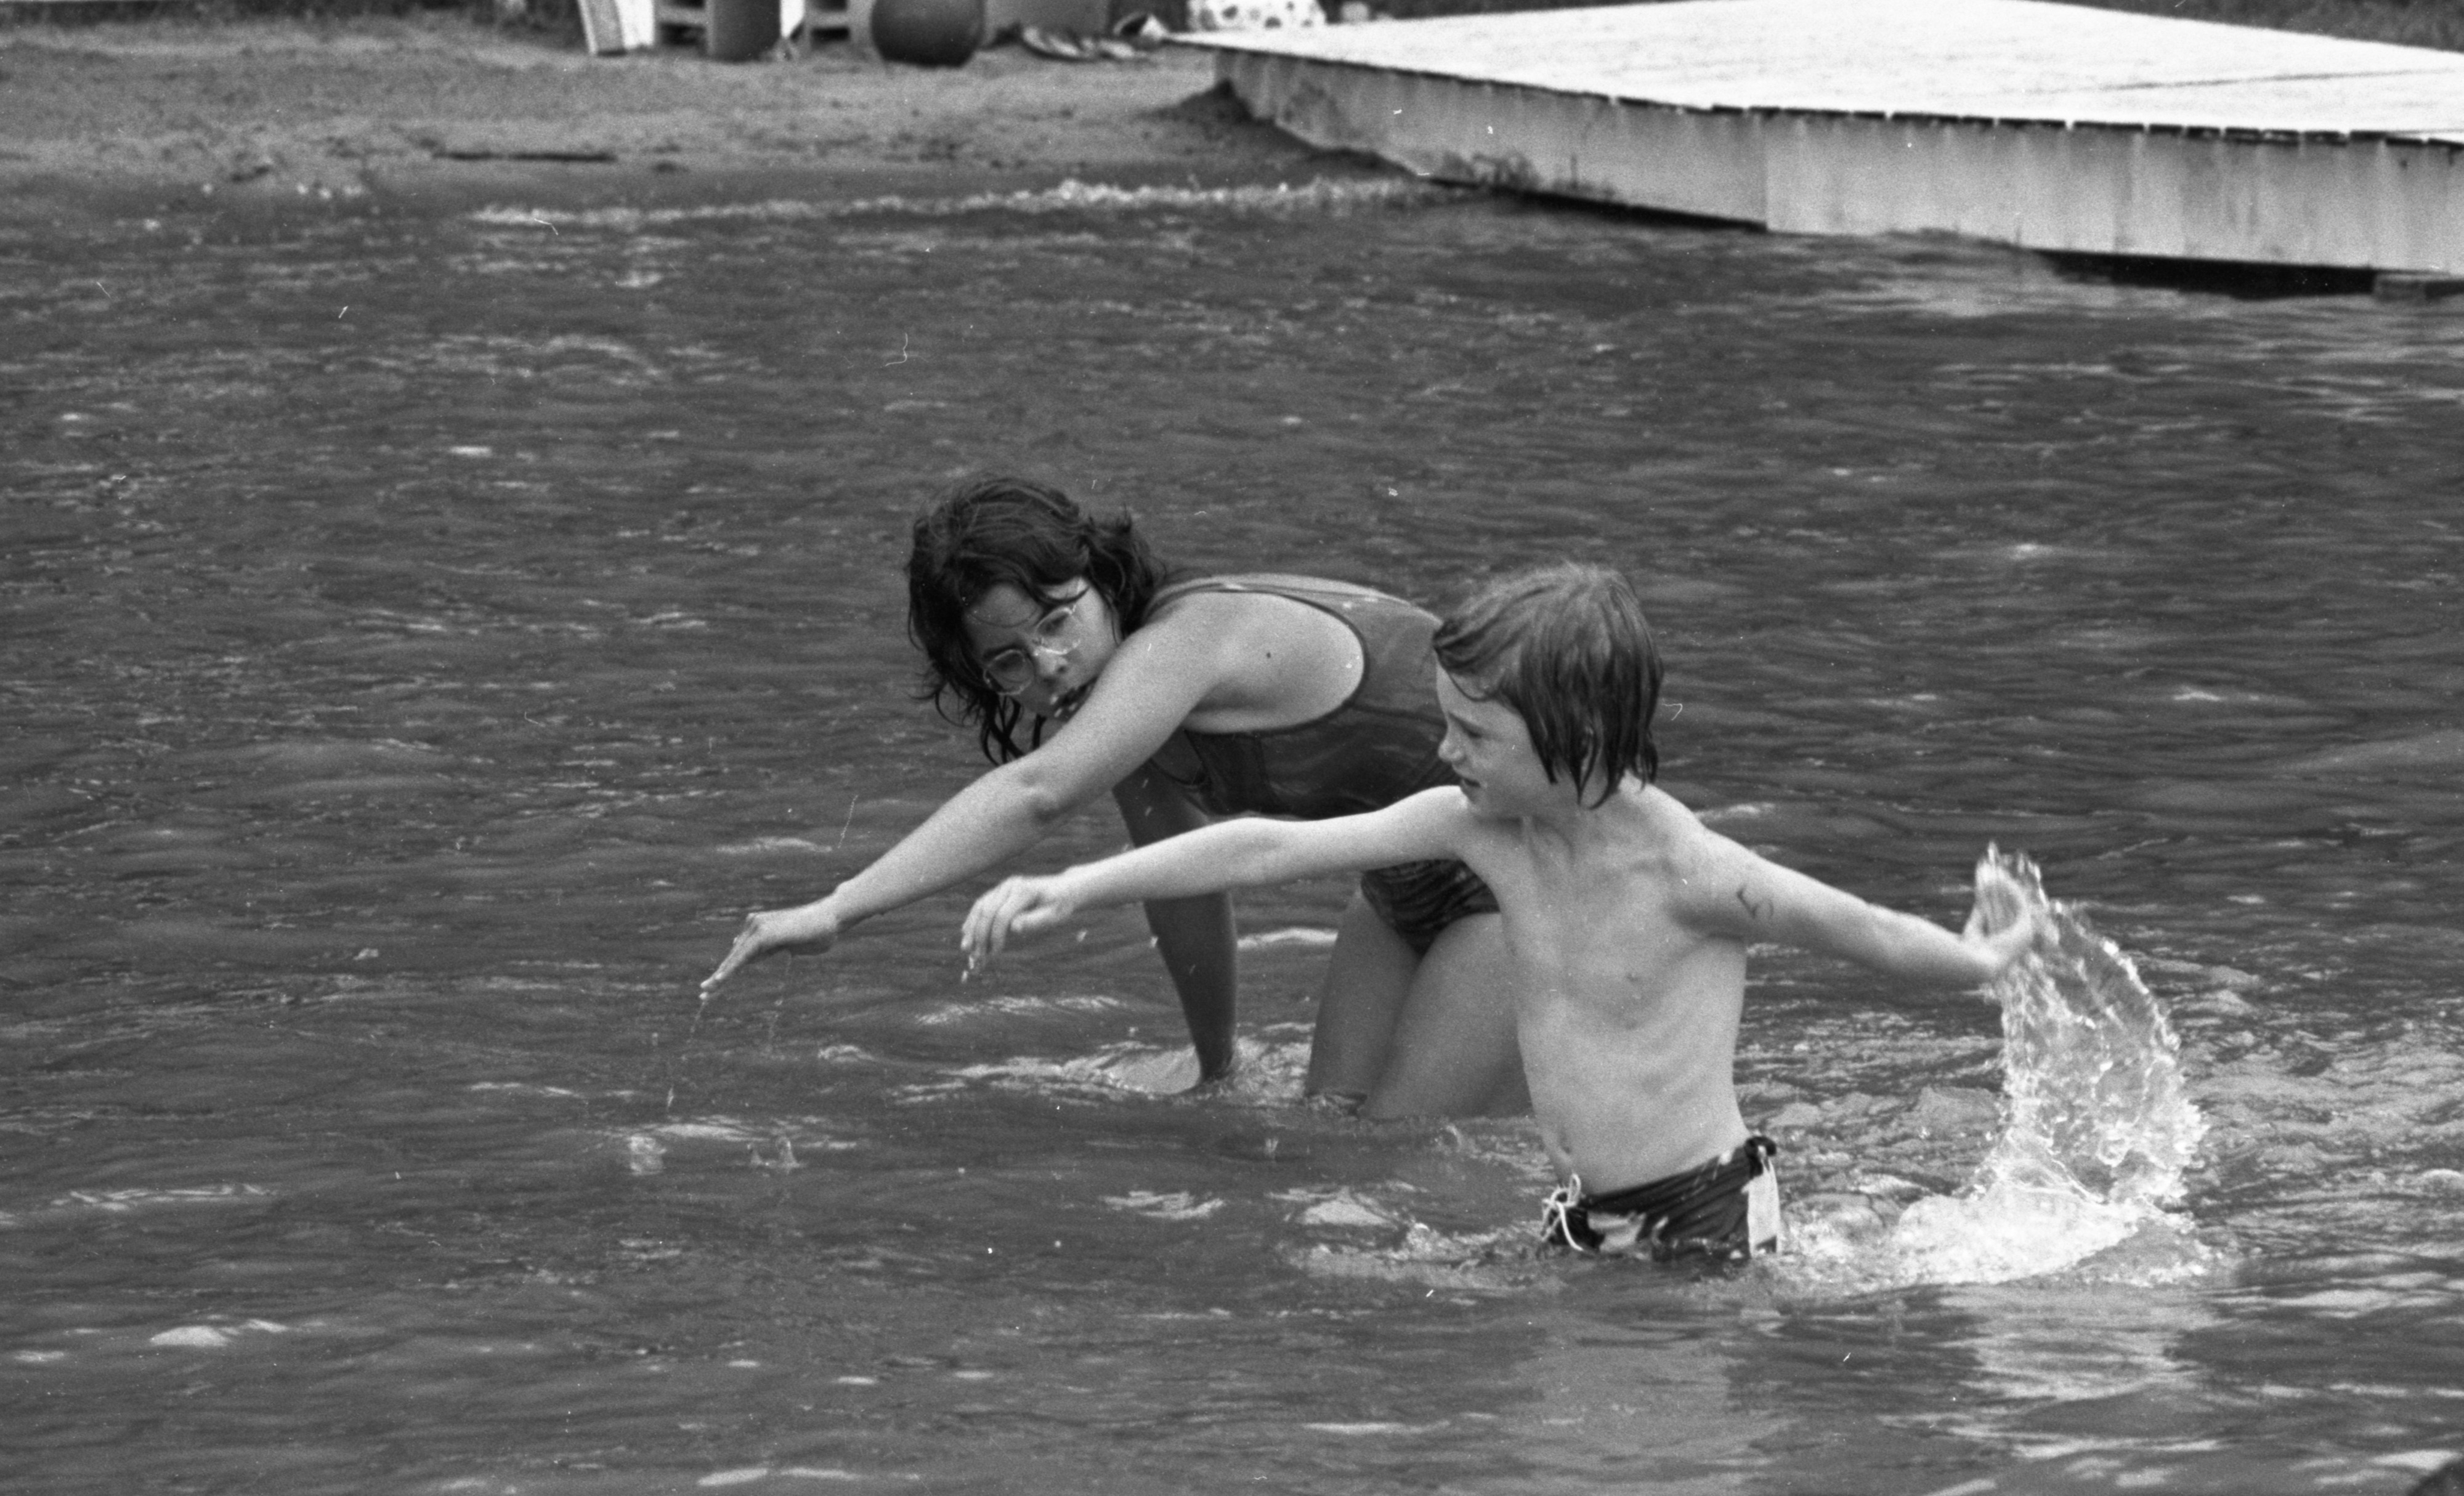 Swim Instruction In Silver Lake At YM-YWCA Camp Birkett, July 1973 image